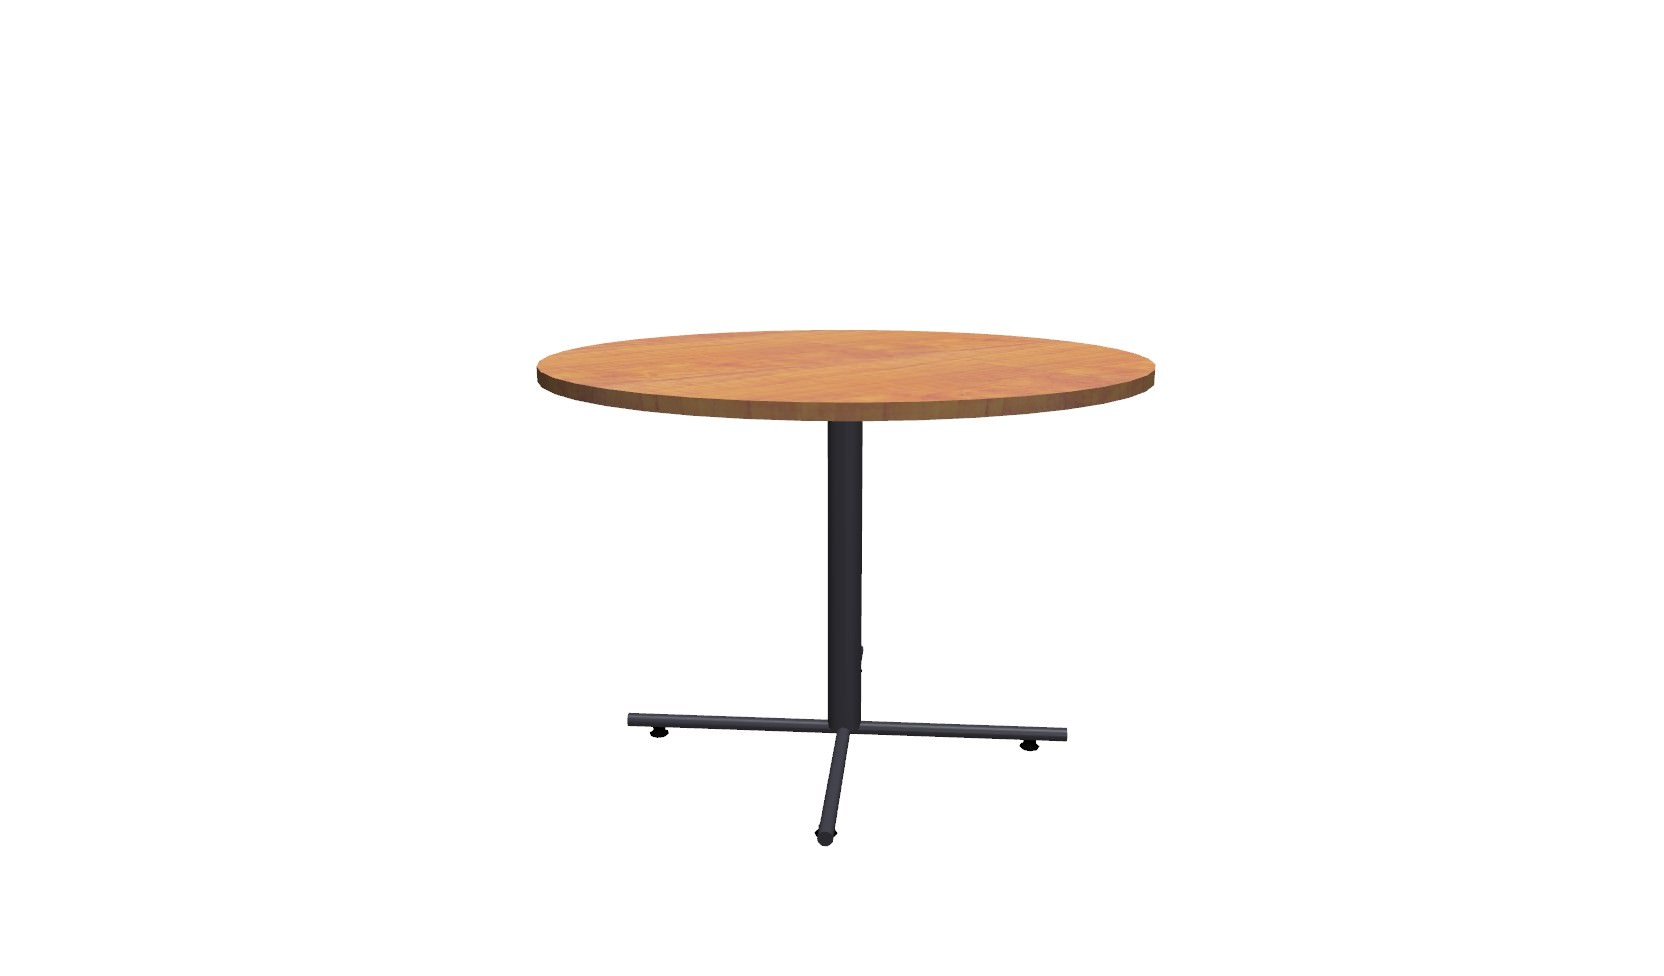 Inch Round Conference Table Honey Black - 42 inch round conference table